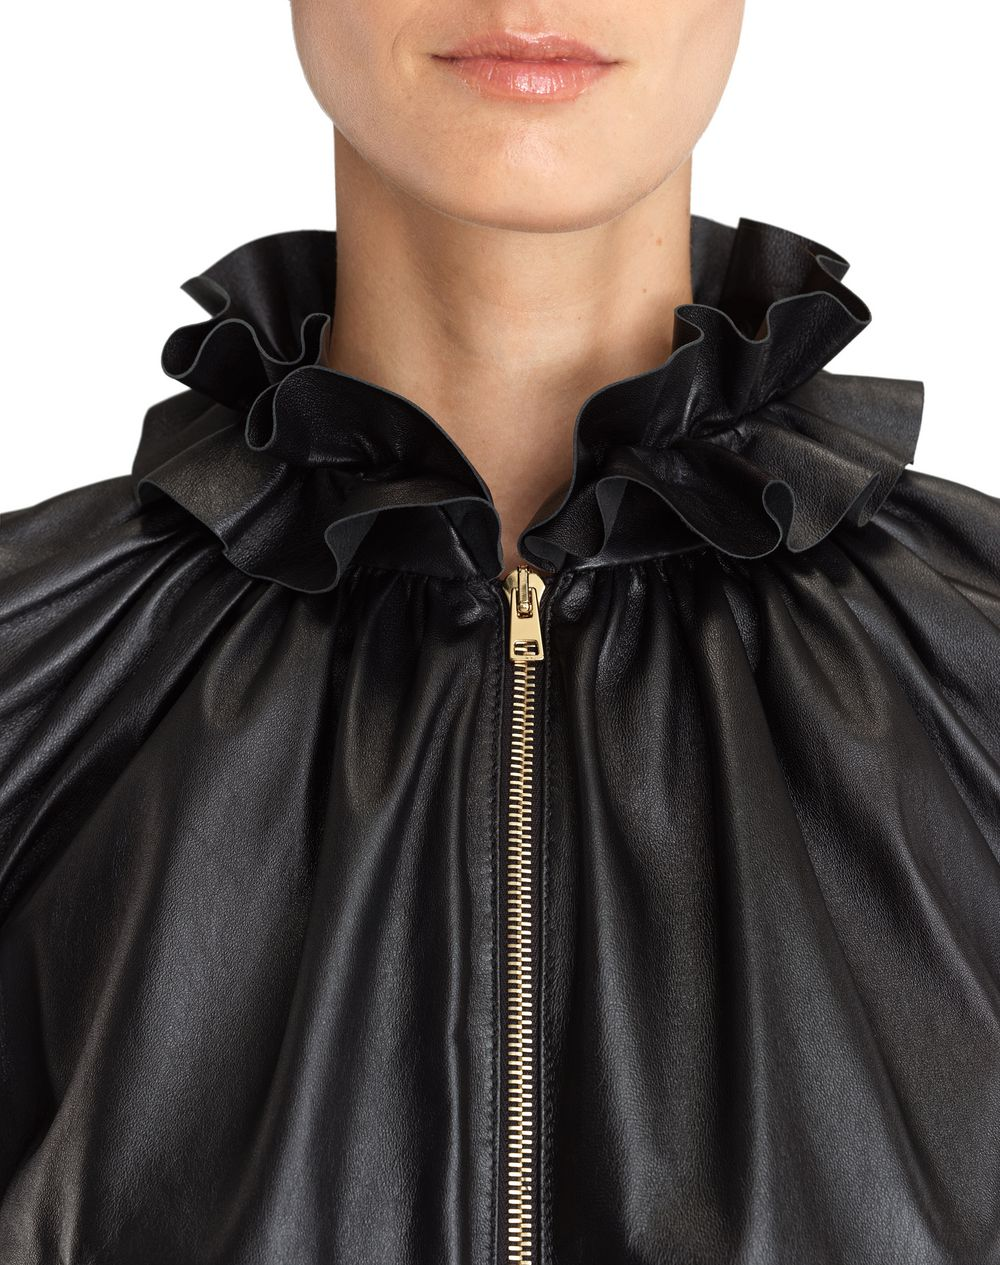 GATHERED LEATHER JACKET - Lanvin